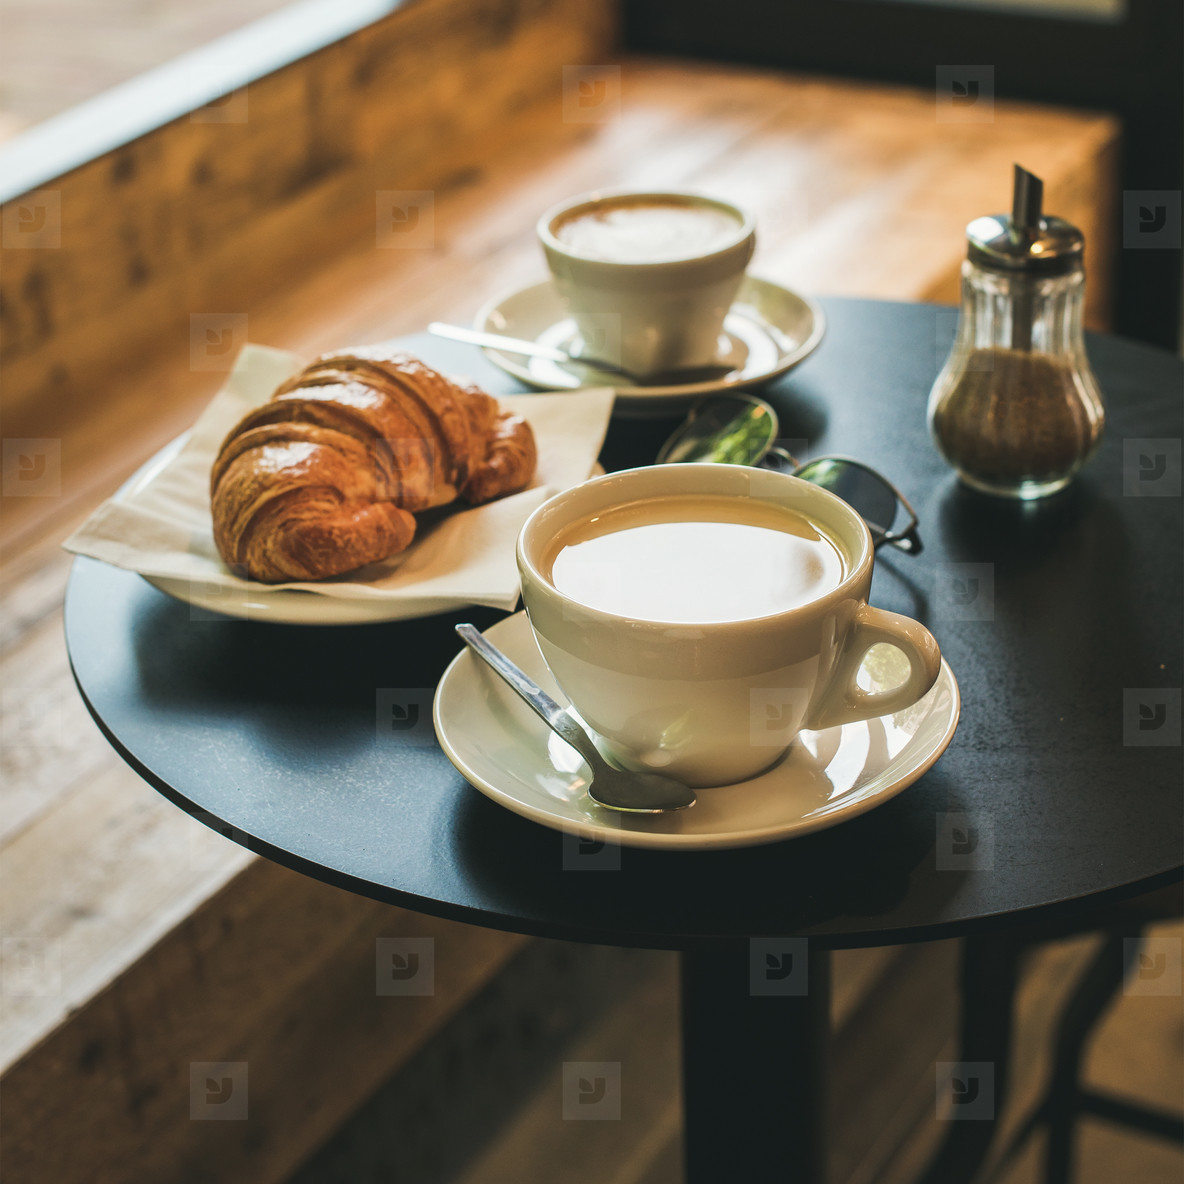 Coffee latte  cappuccino and croissant on table   square crop